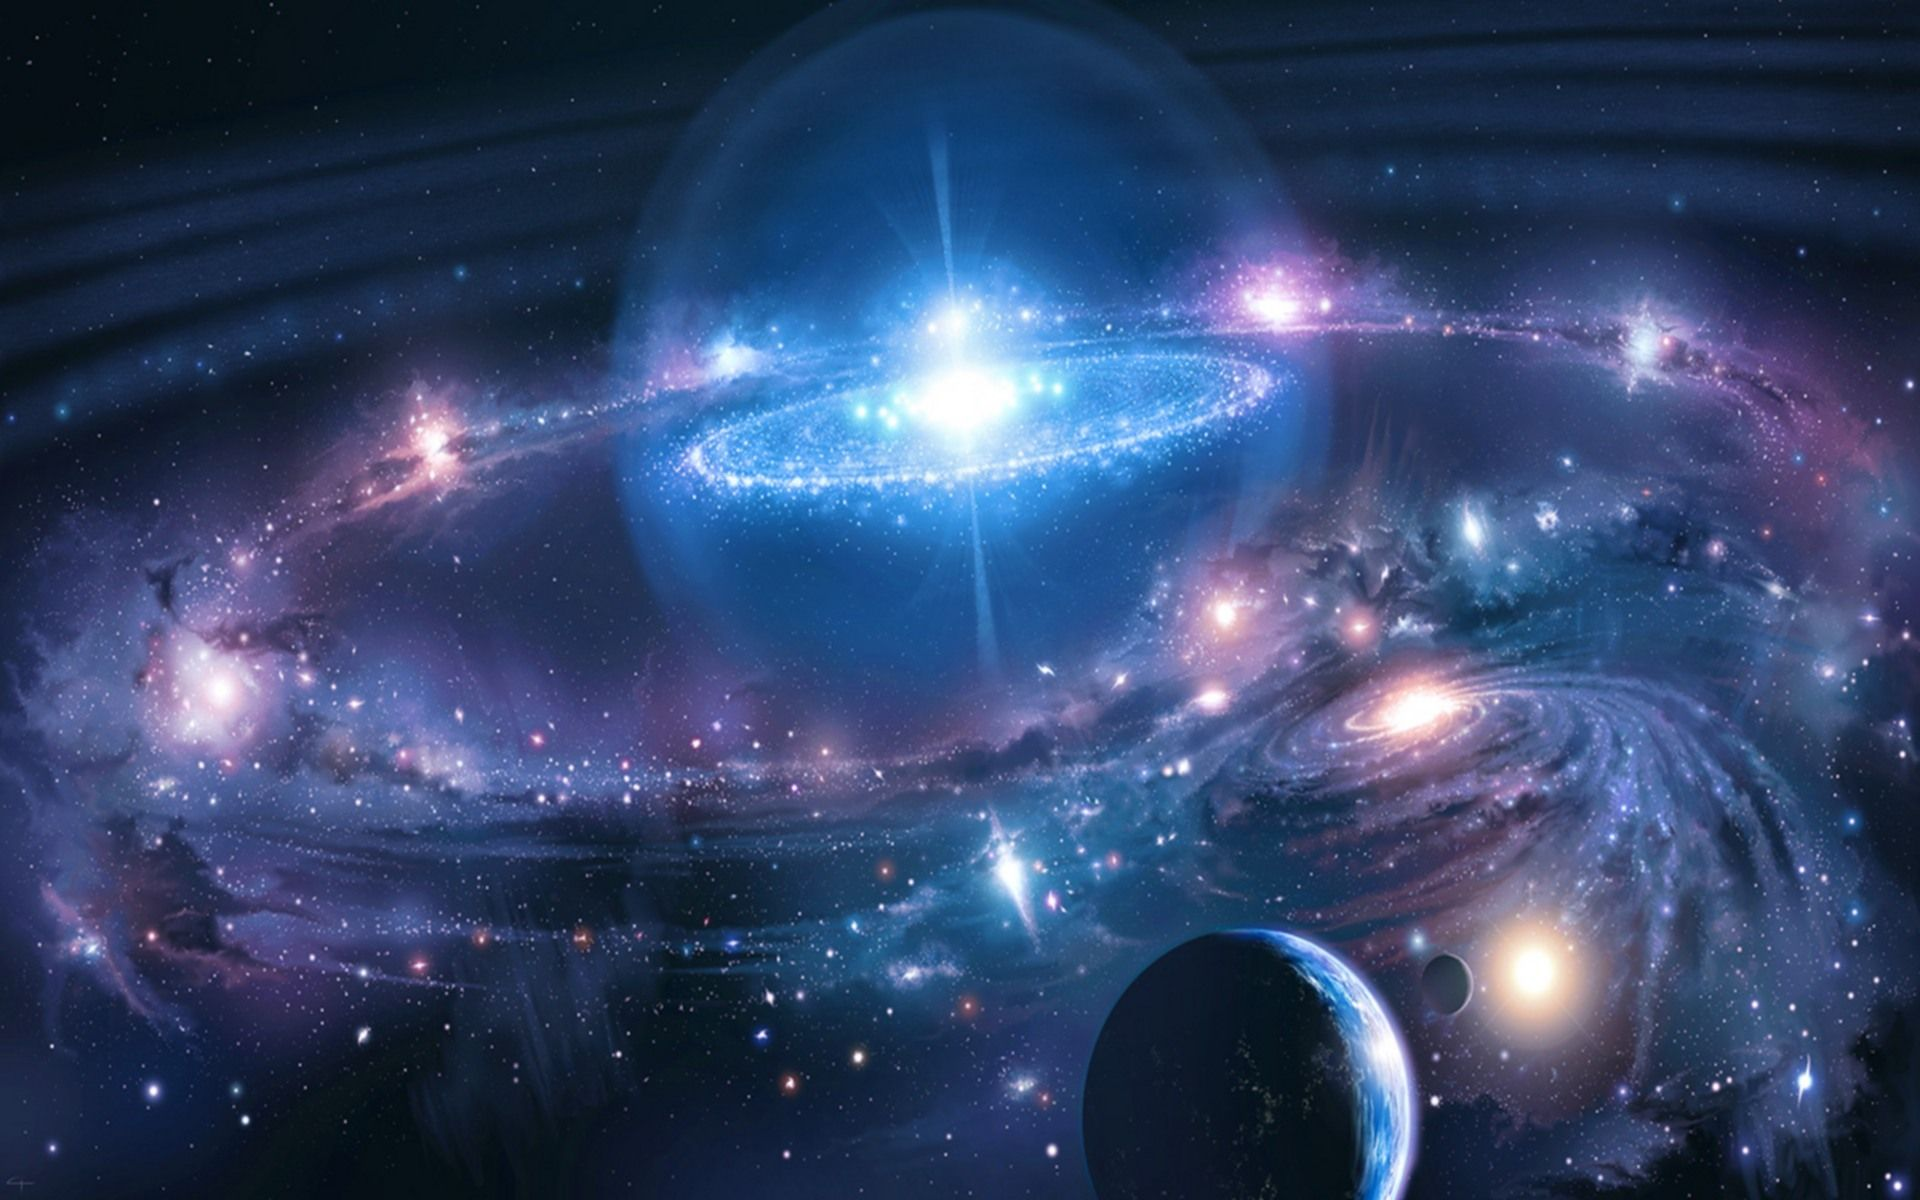 Desktop wallpapers and backgrounds. Galaxy clipart epic